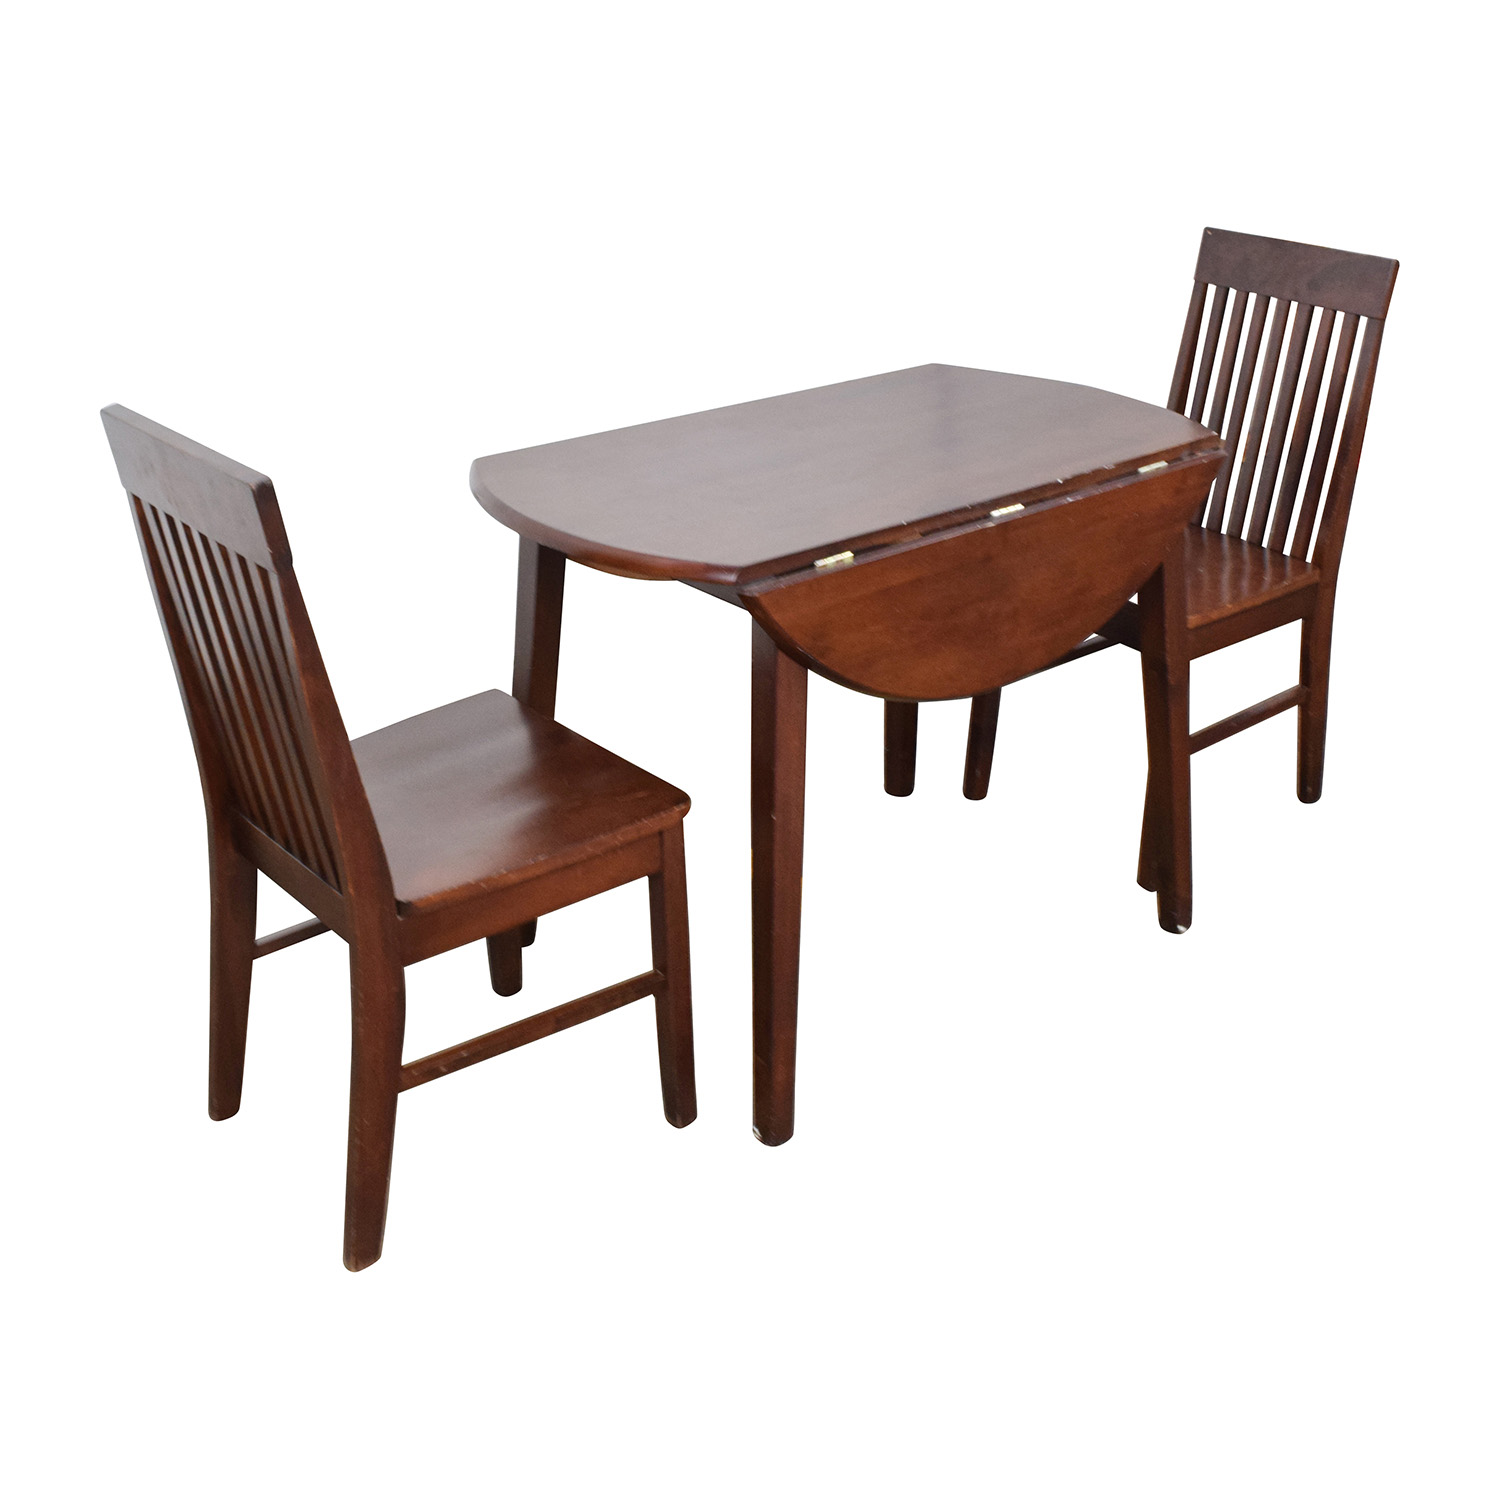 Where To Buy Dining Table: Round Dining Table With Folding Sides And Chairs